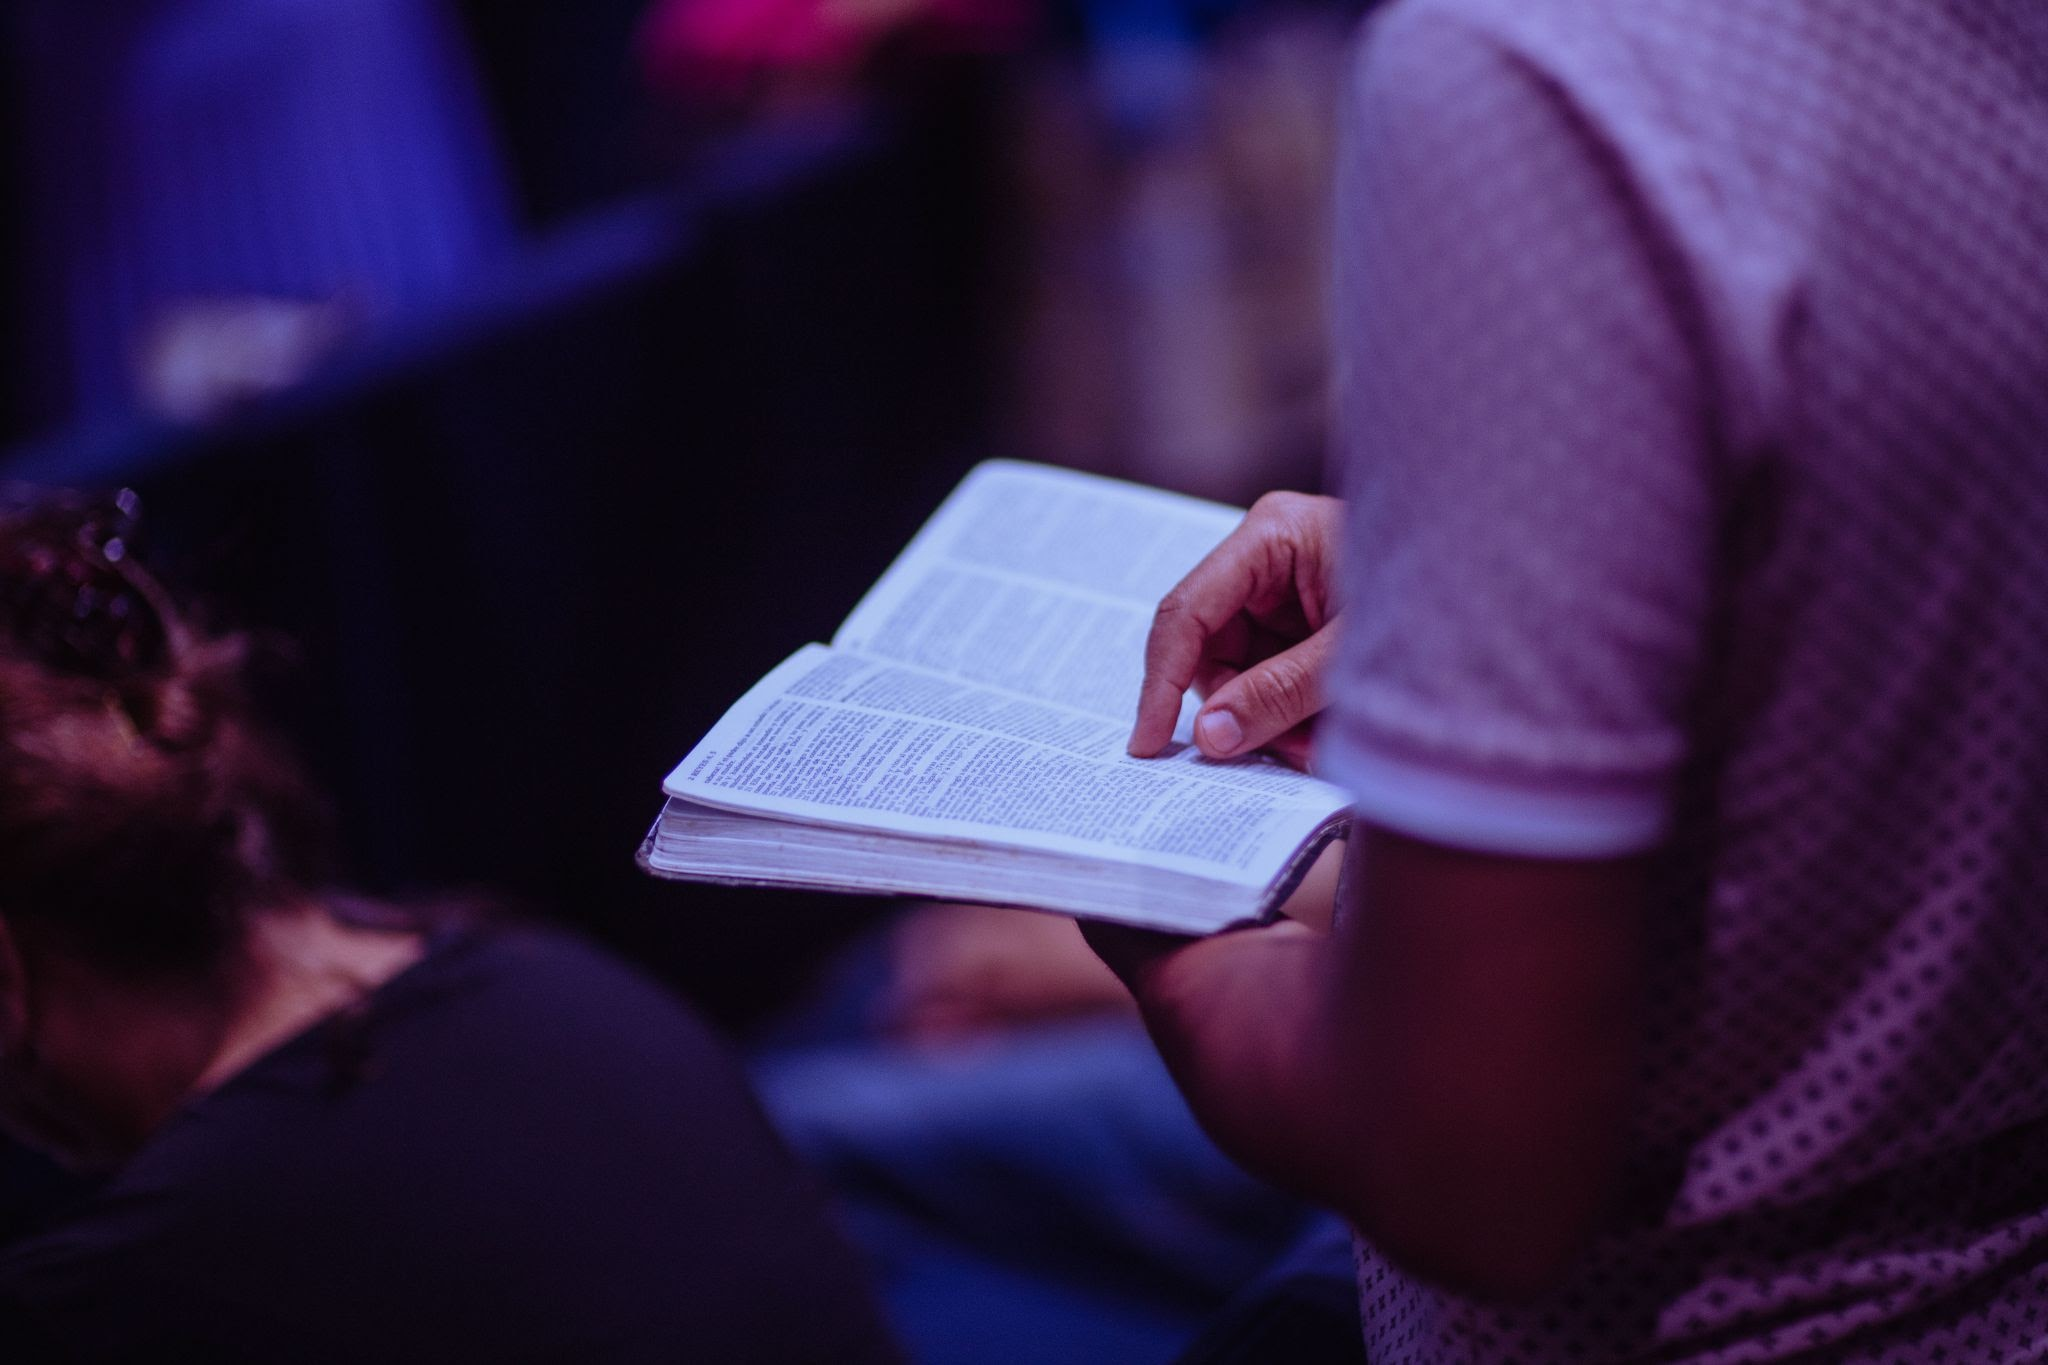 a-picture-of-a-person-reading-the-bible